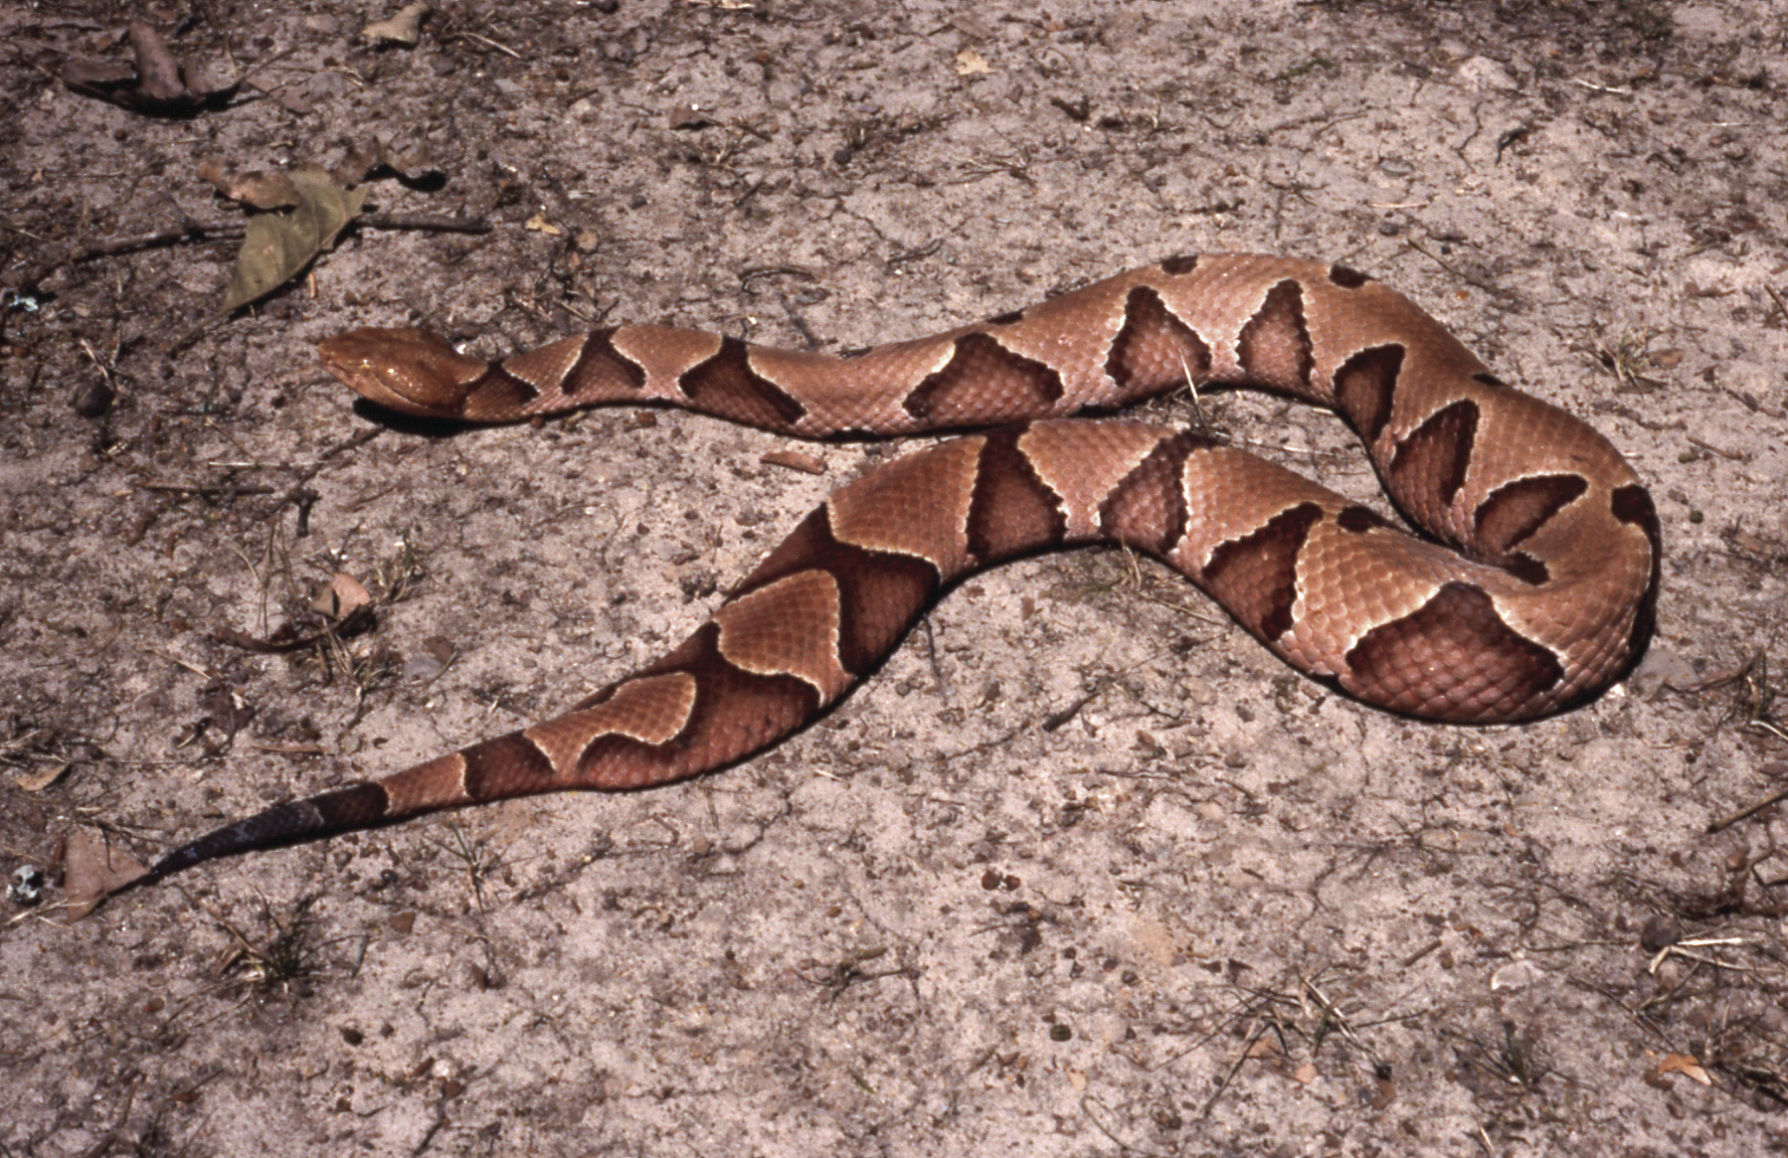 northern copperhead pictures - HD 1200×777